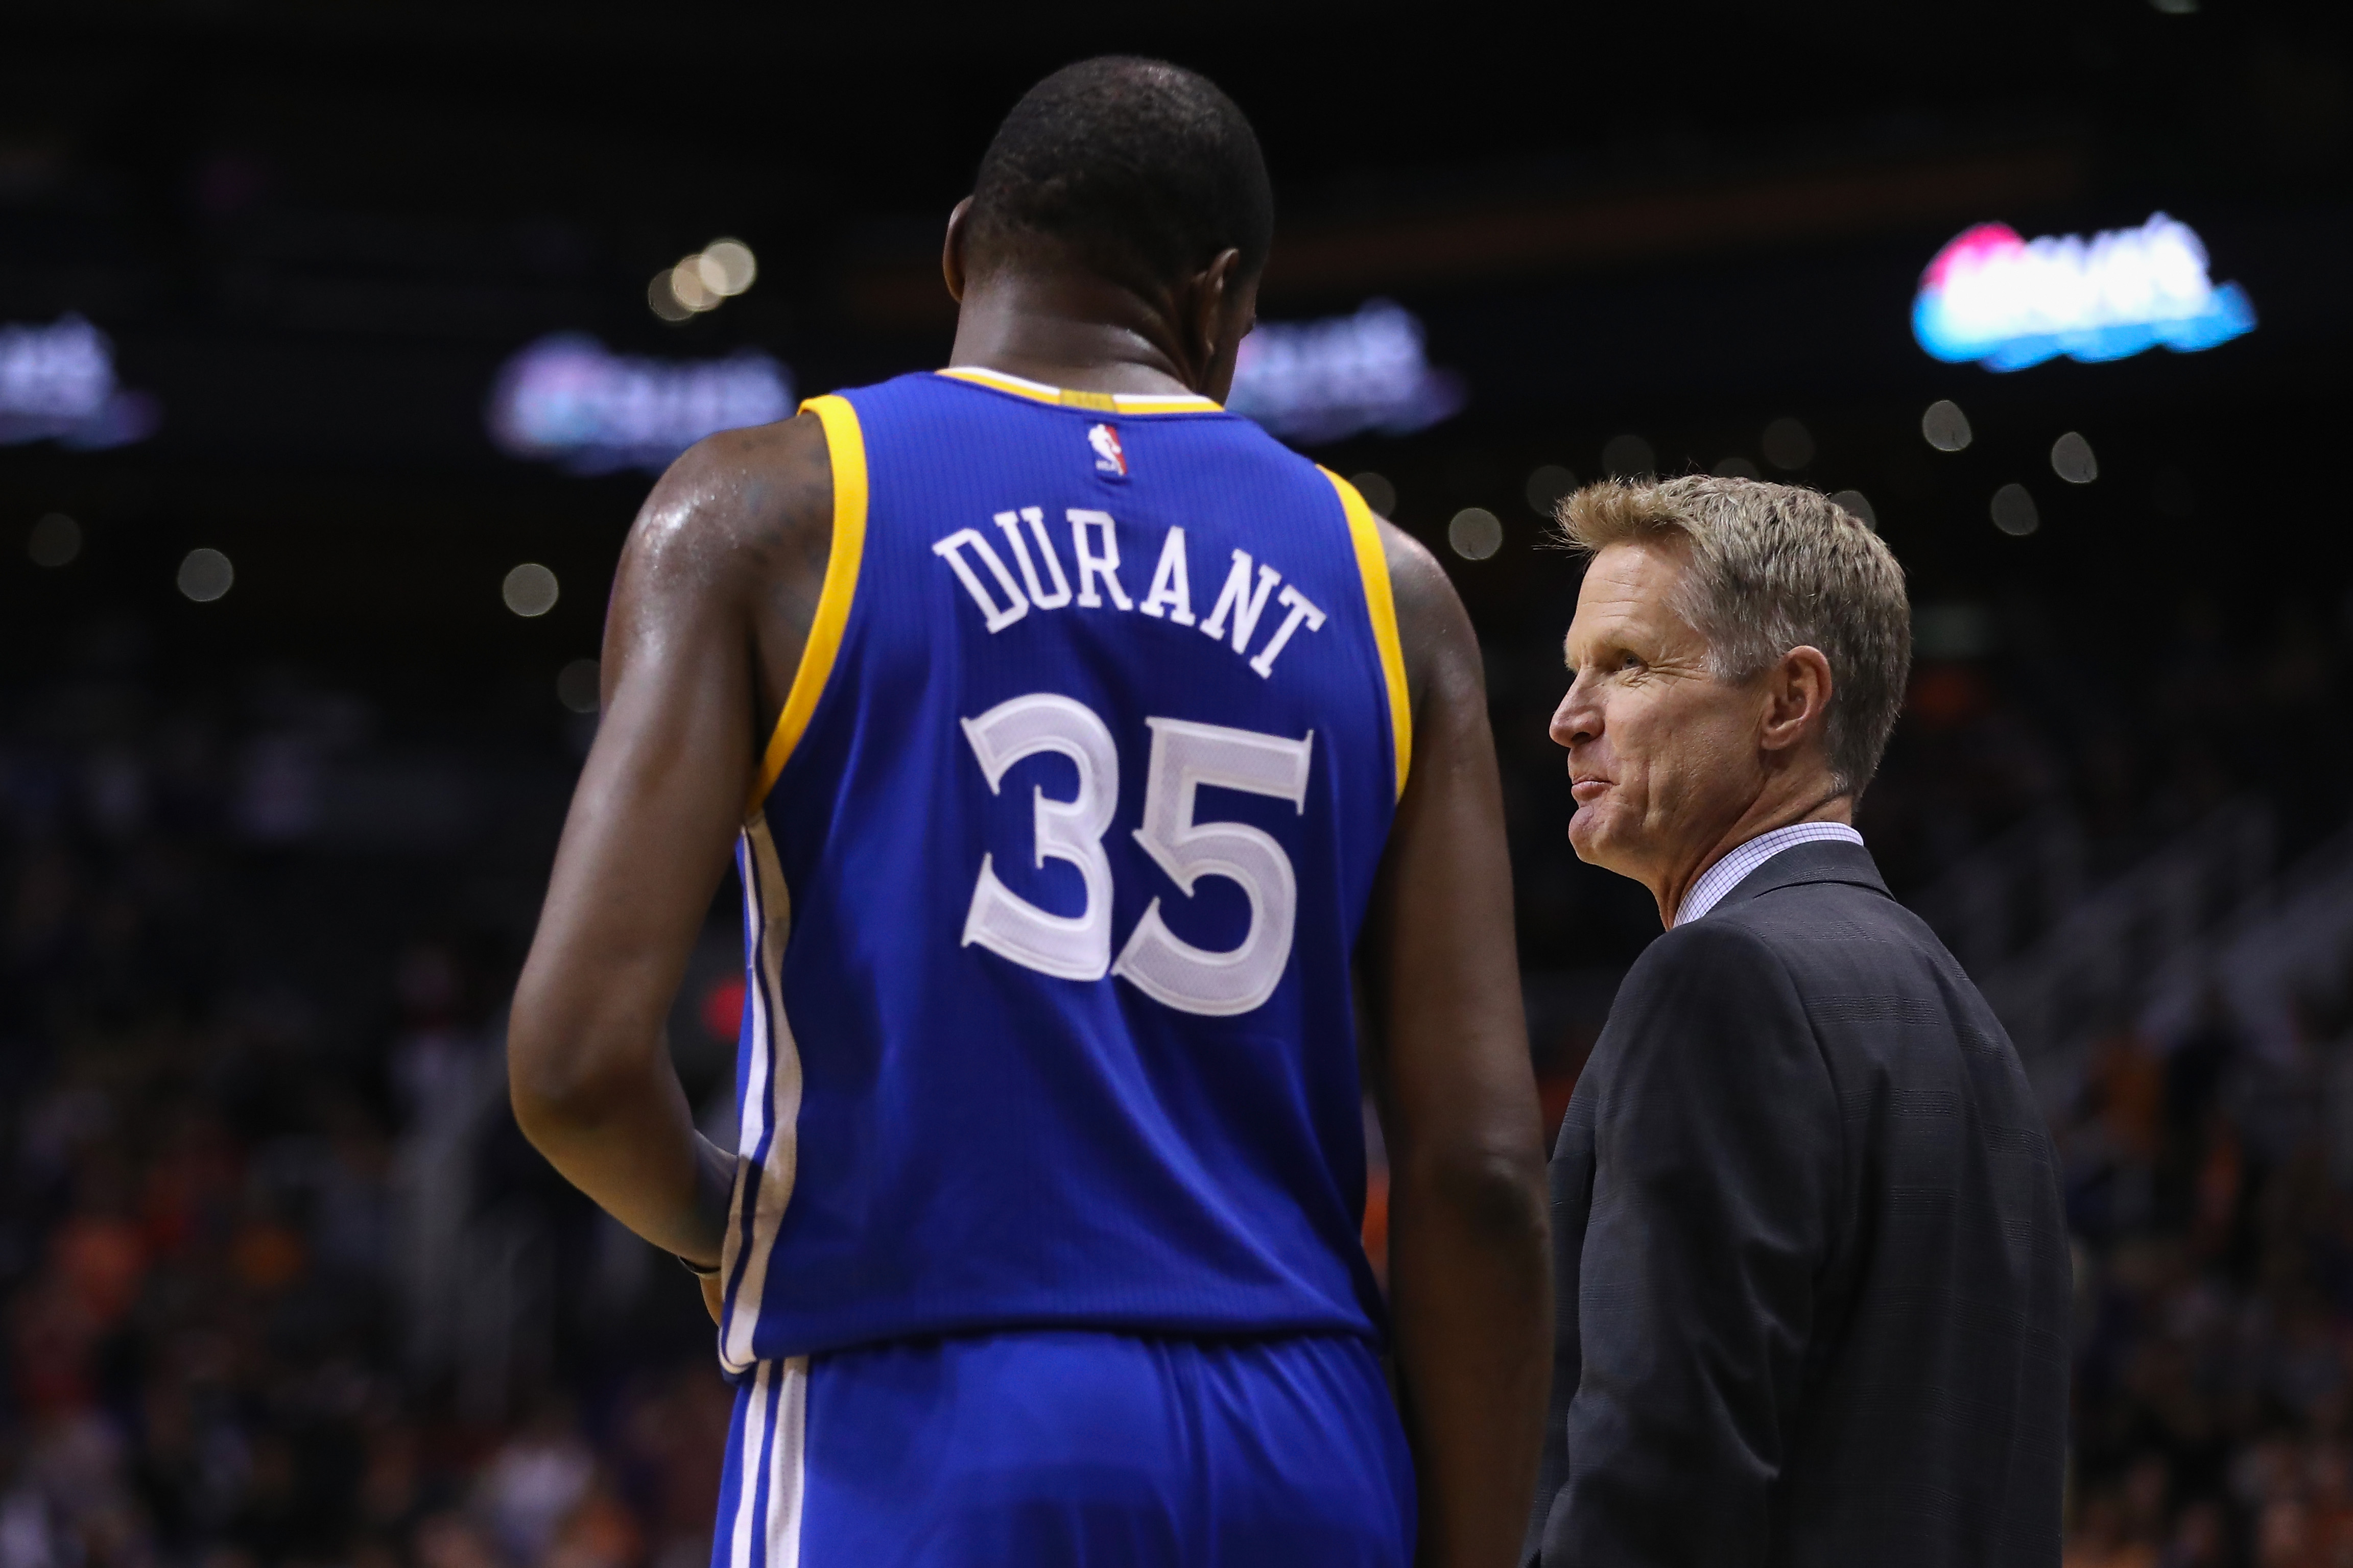 PHOENIX, AZ - OCTOBER 30: Head coach Steve Kerr of the Golden State Warriors talks with Kevin Durant #35 during the second half of the NBA game against the Phoenix Suns at Talking Stick Resort Arena on October 30, 2016 in Phoenix, Arizona. The Warriors defeated the Suns 106 -100. NOTE TO USER: User expressly acknowledges and agrees that, by downloading and or using this photograph, User is consenting to the terms and conditions of the Getty Images License Agreement. (Photo by Christian Petersen/Getty Images)